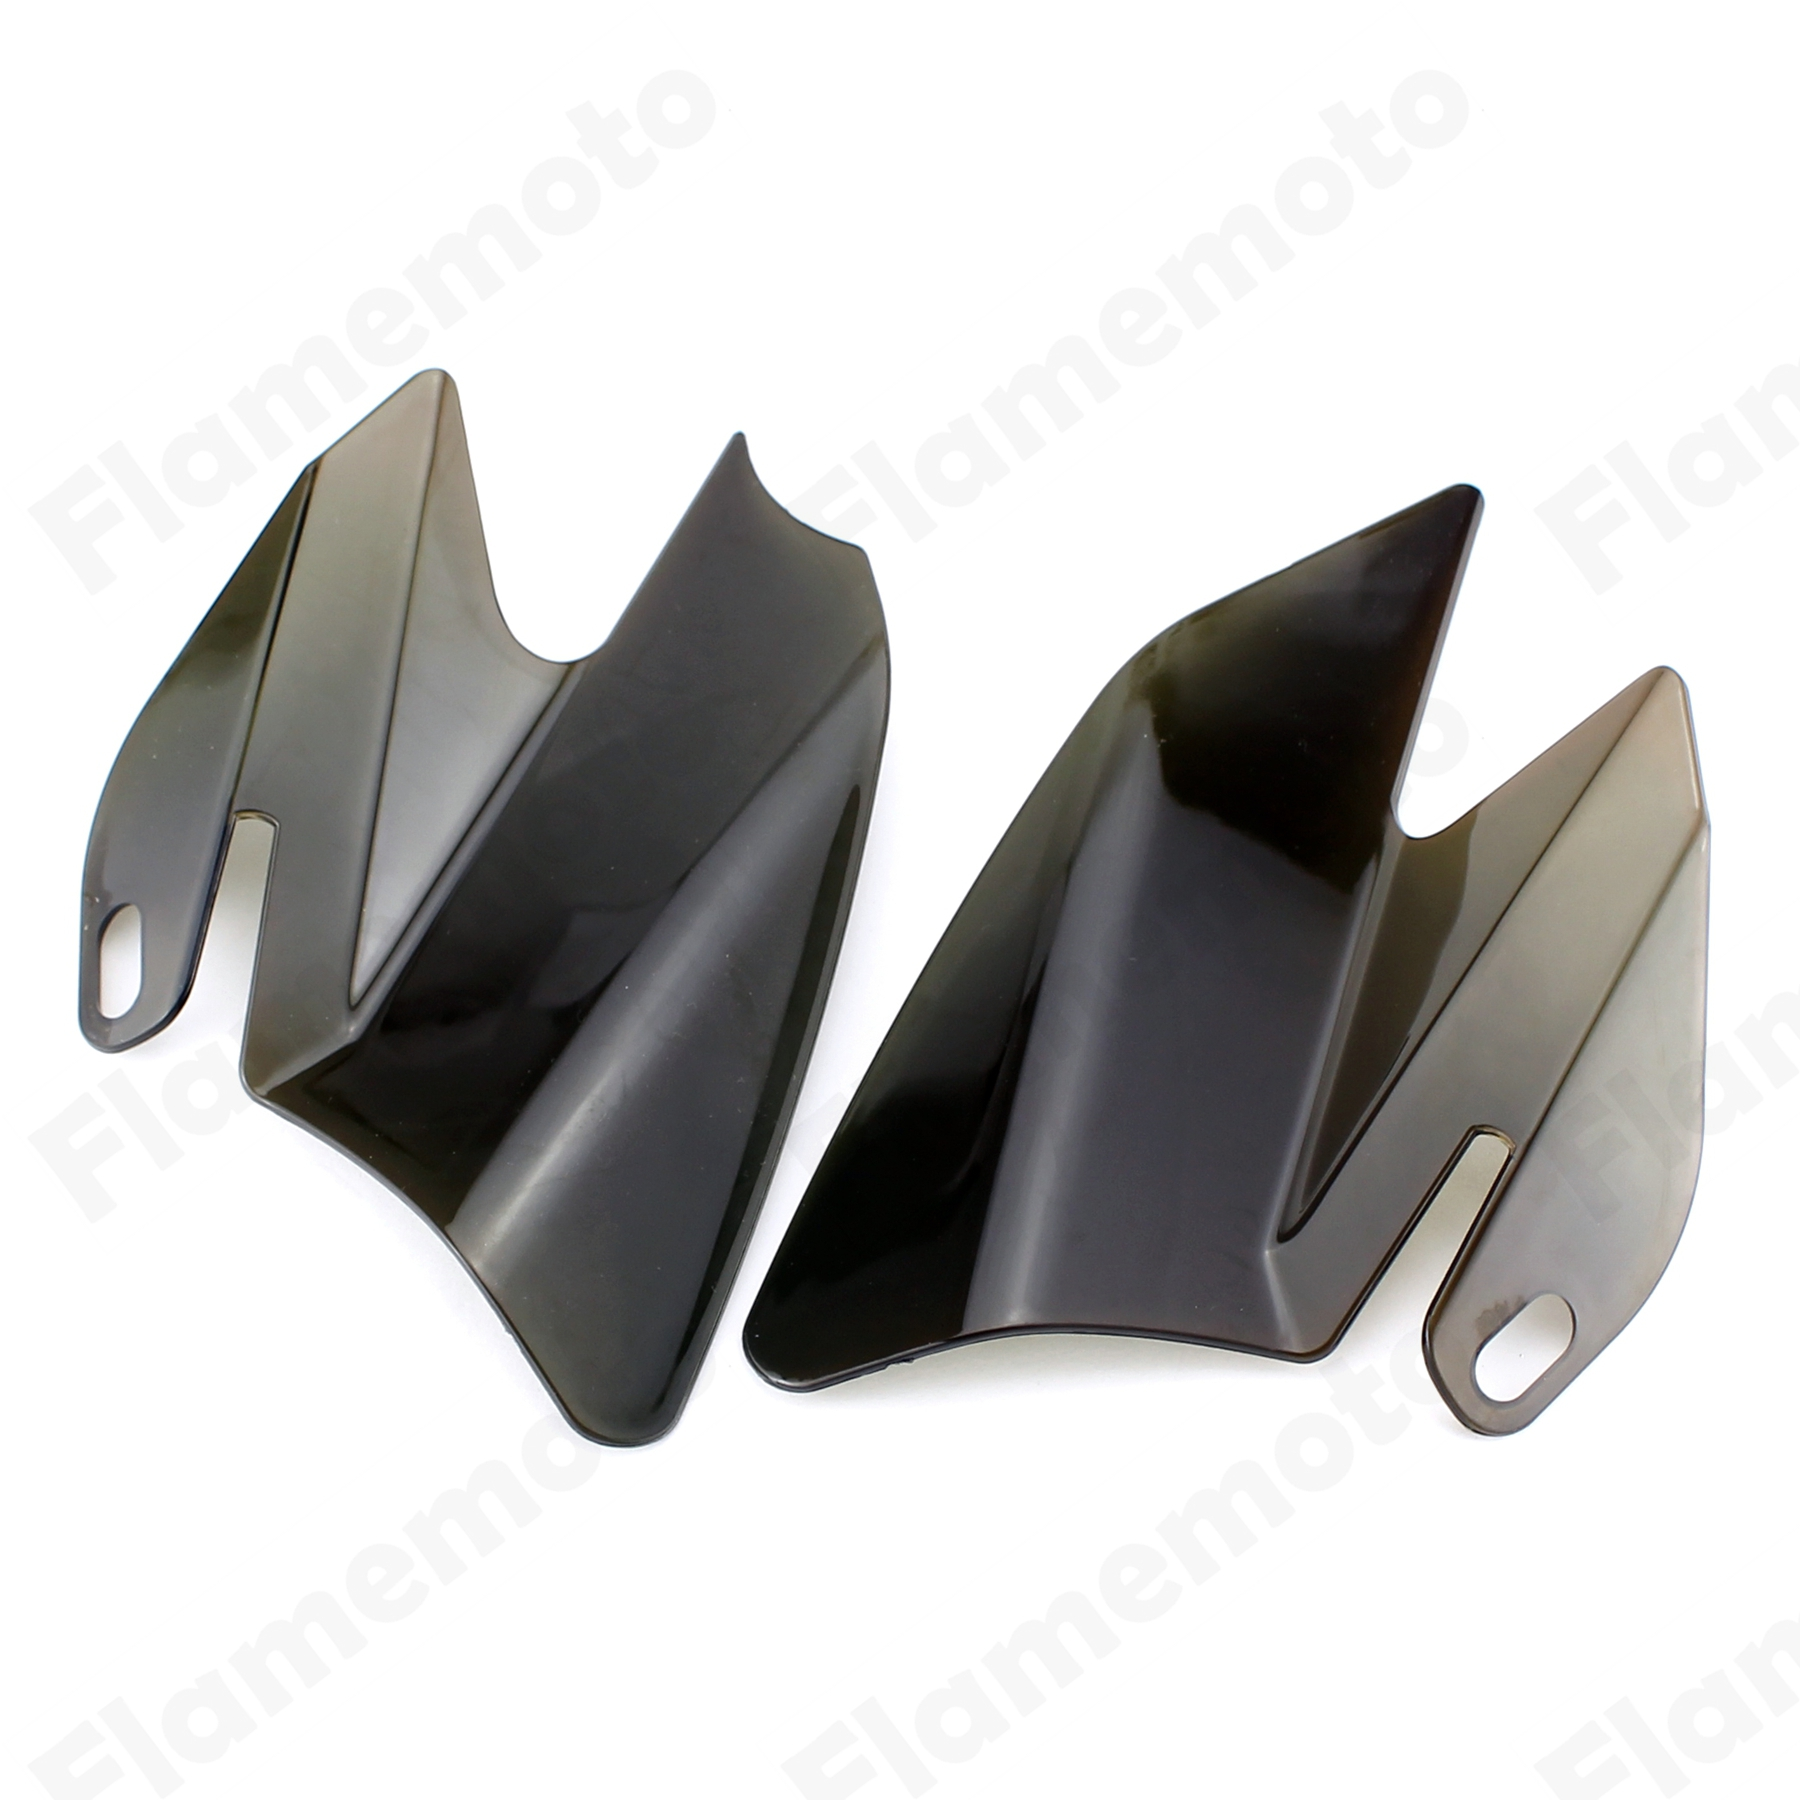 Motorcycle Parts Saddle Shield Heat Deflectors For Harley Touring Road King Electra Glide FLHR FLTR FLHT FLHX 2008 Smoke motorbike parts saddle shield heat deflector for harley touring road king street glide trike flht fltr flhr 2009 2016 chrome